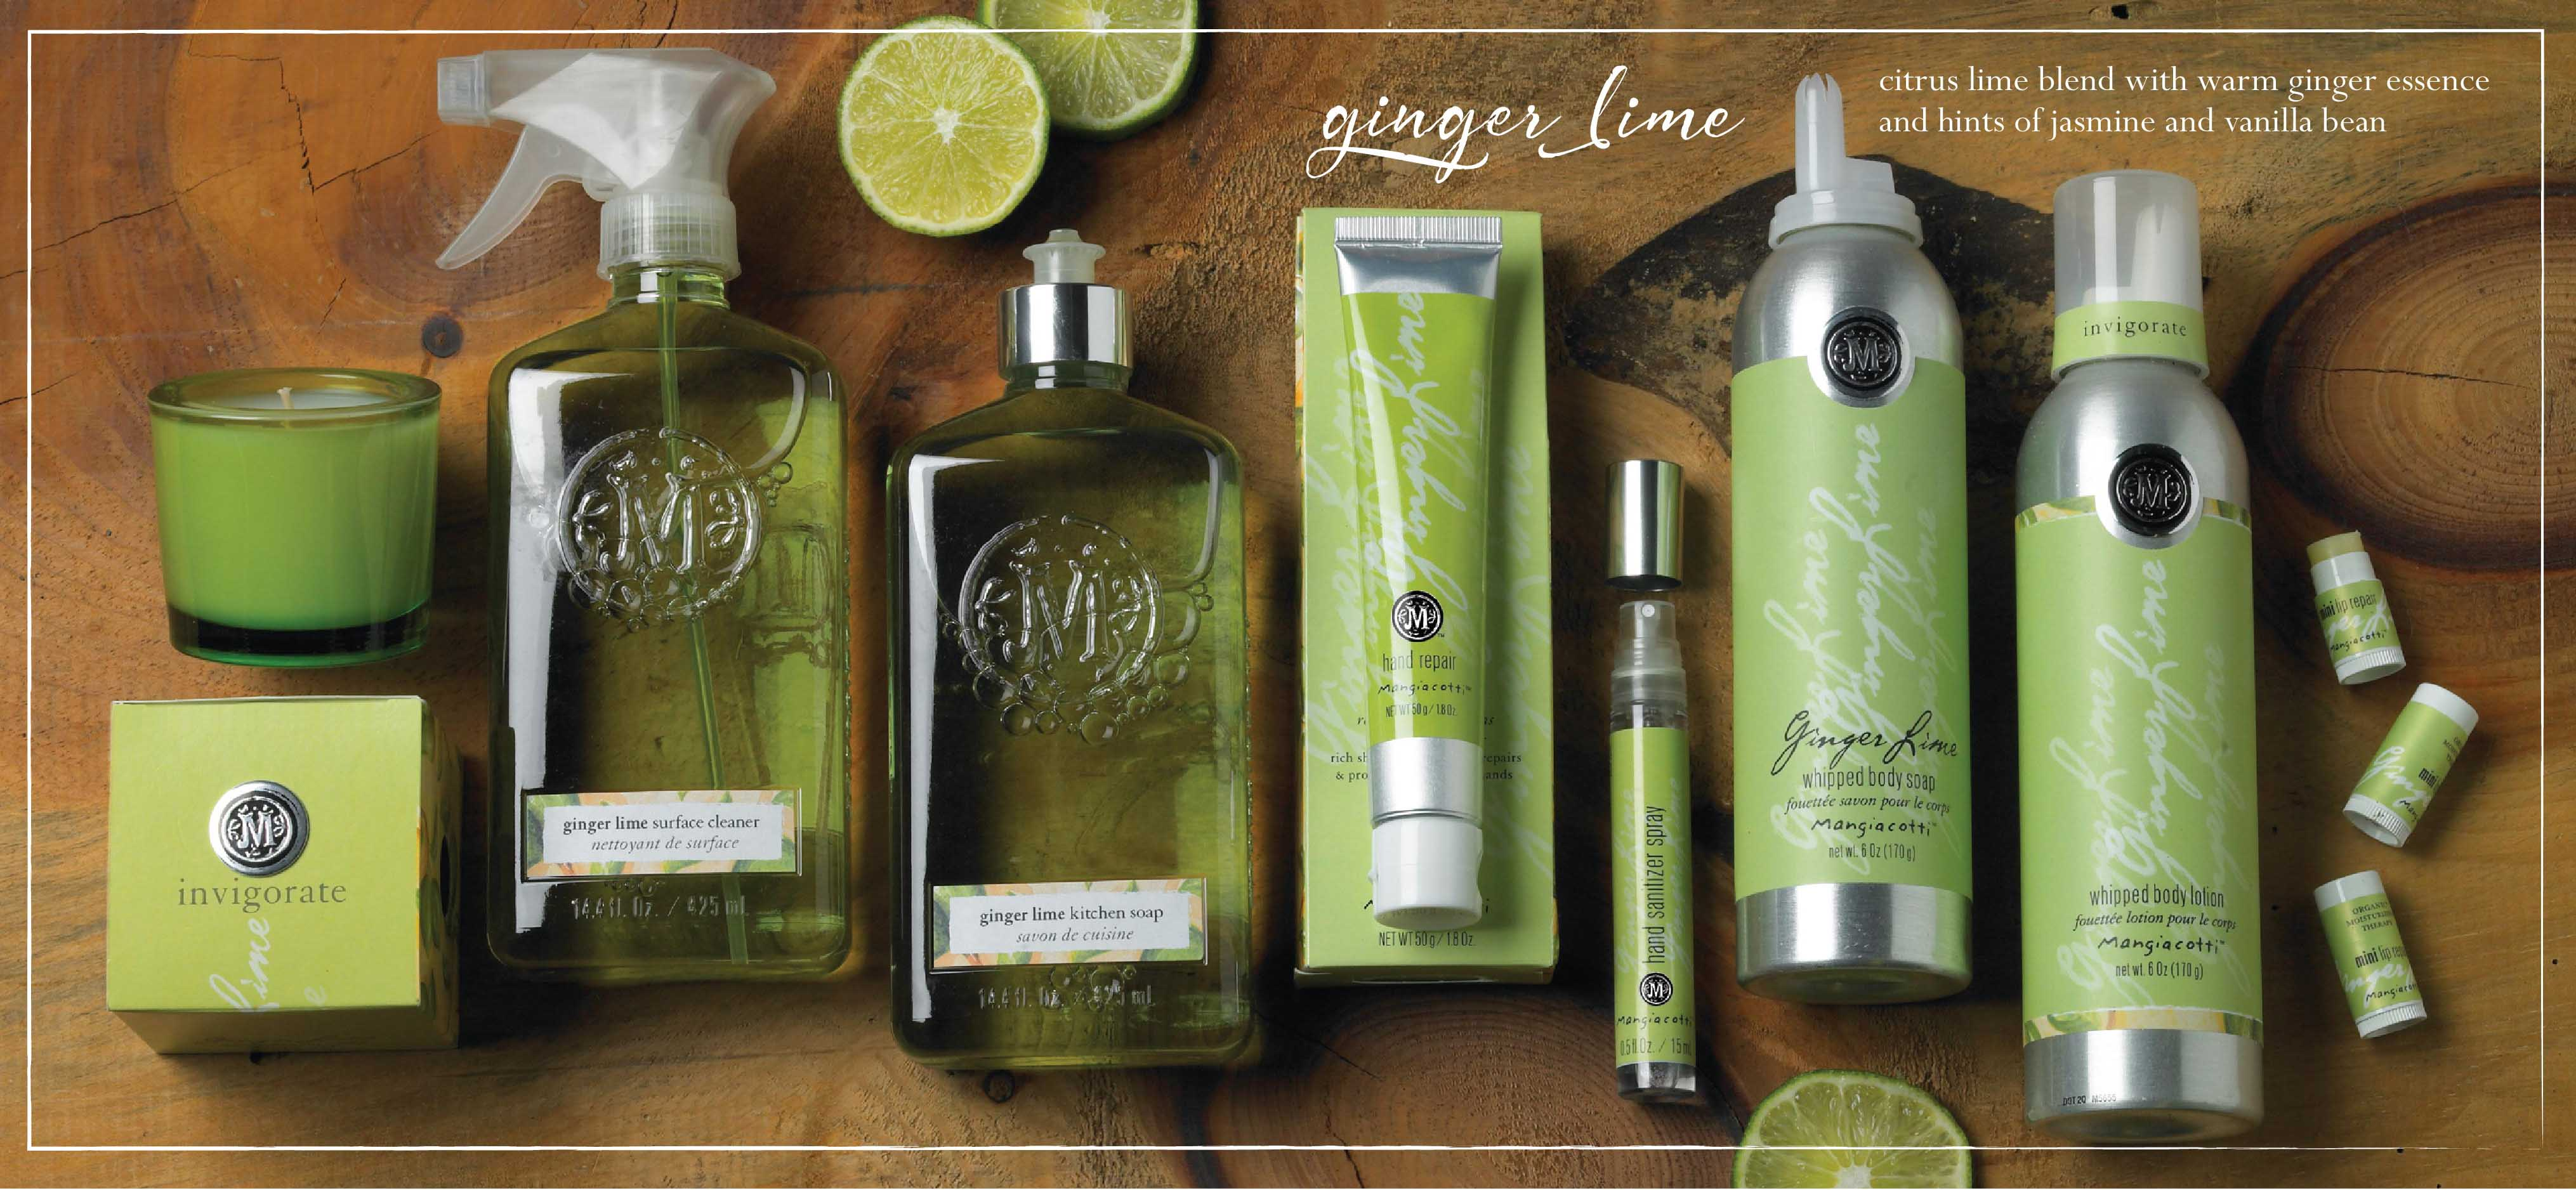 ginger-lime-web-fragrance.jpg